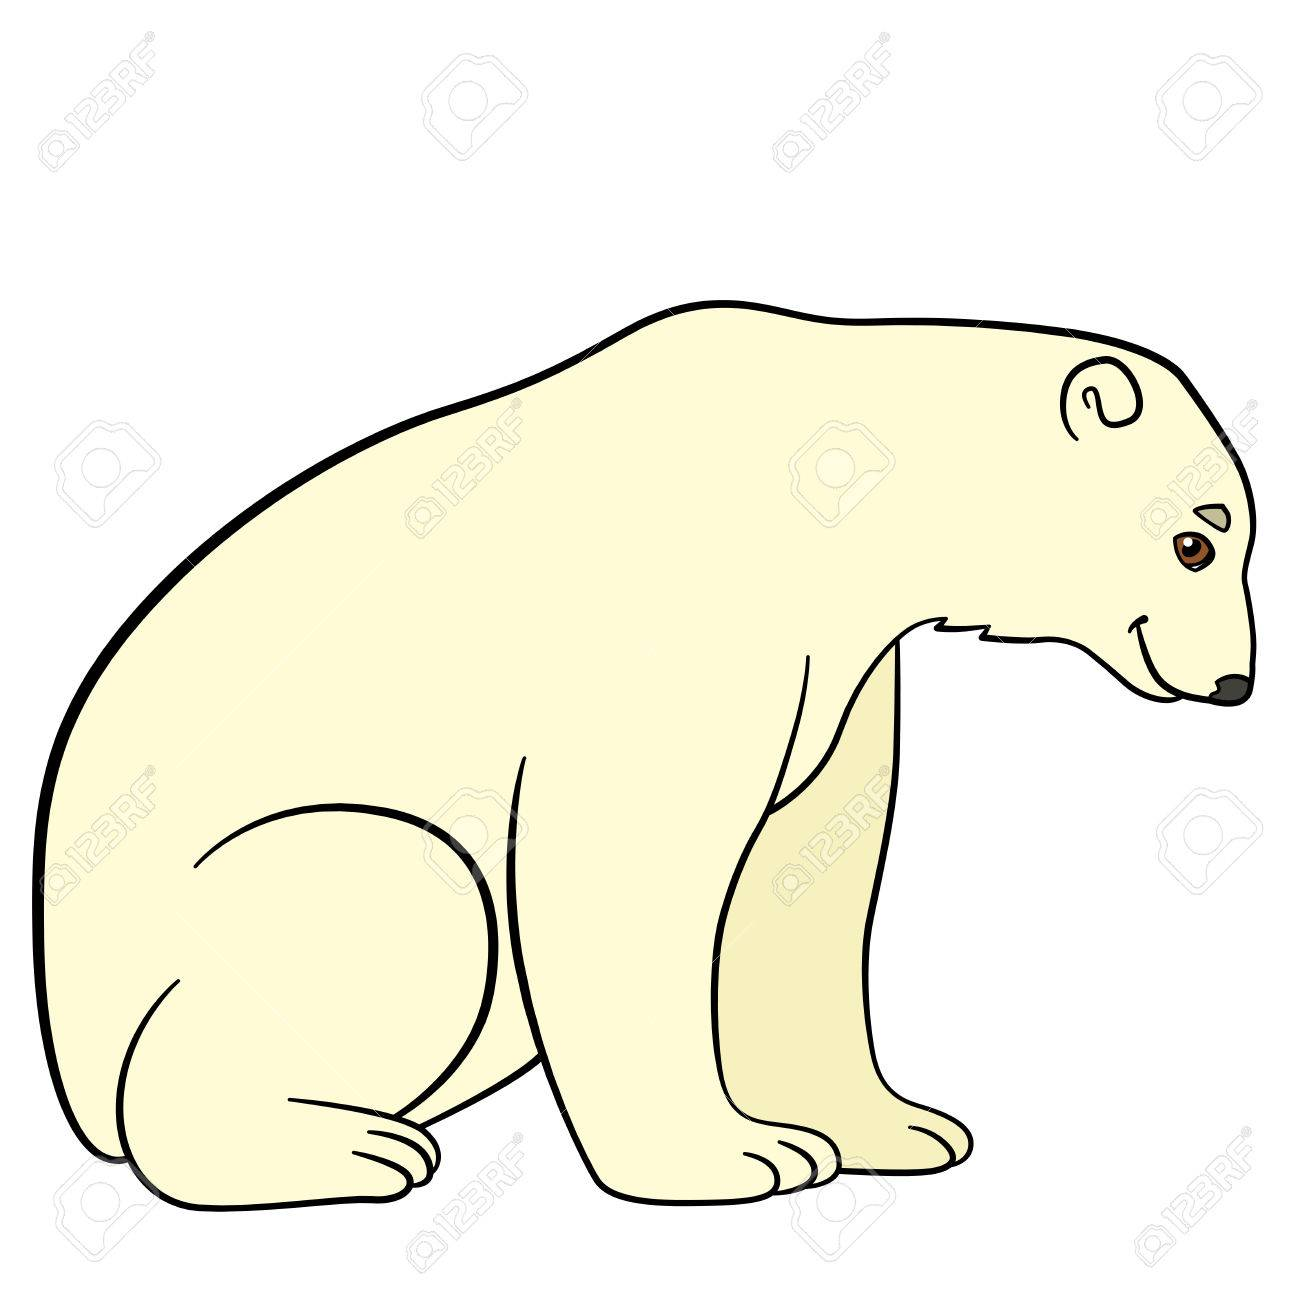 Cartoon Animals Cute Polar Bear Sits And Smiles Royalty Free Cliparts Vectors And Stock Illustration Image 63023941